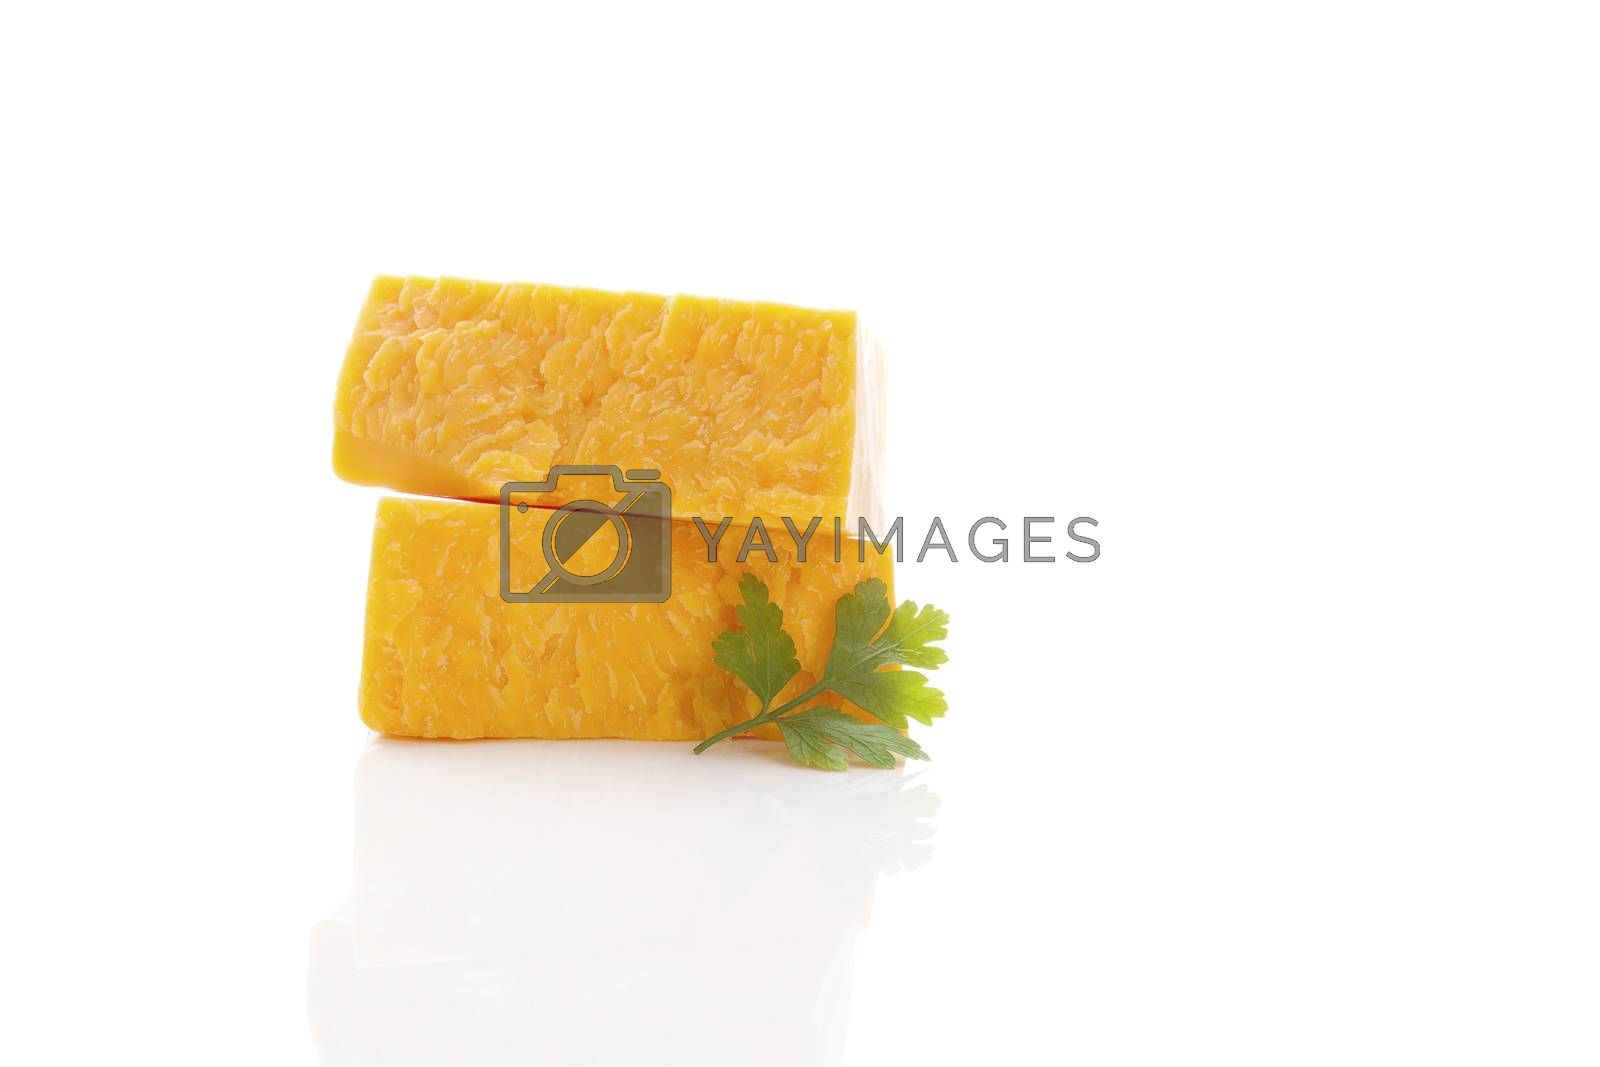 Delicious cheddar cheese isolated on white background. Culinary traditional cheese eating.